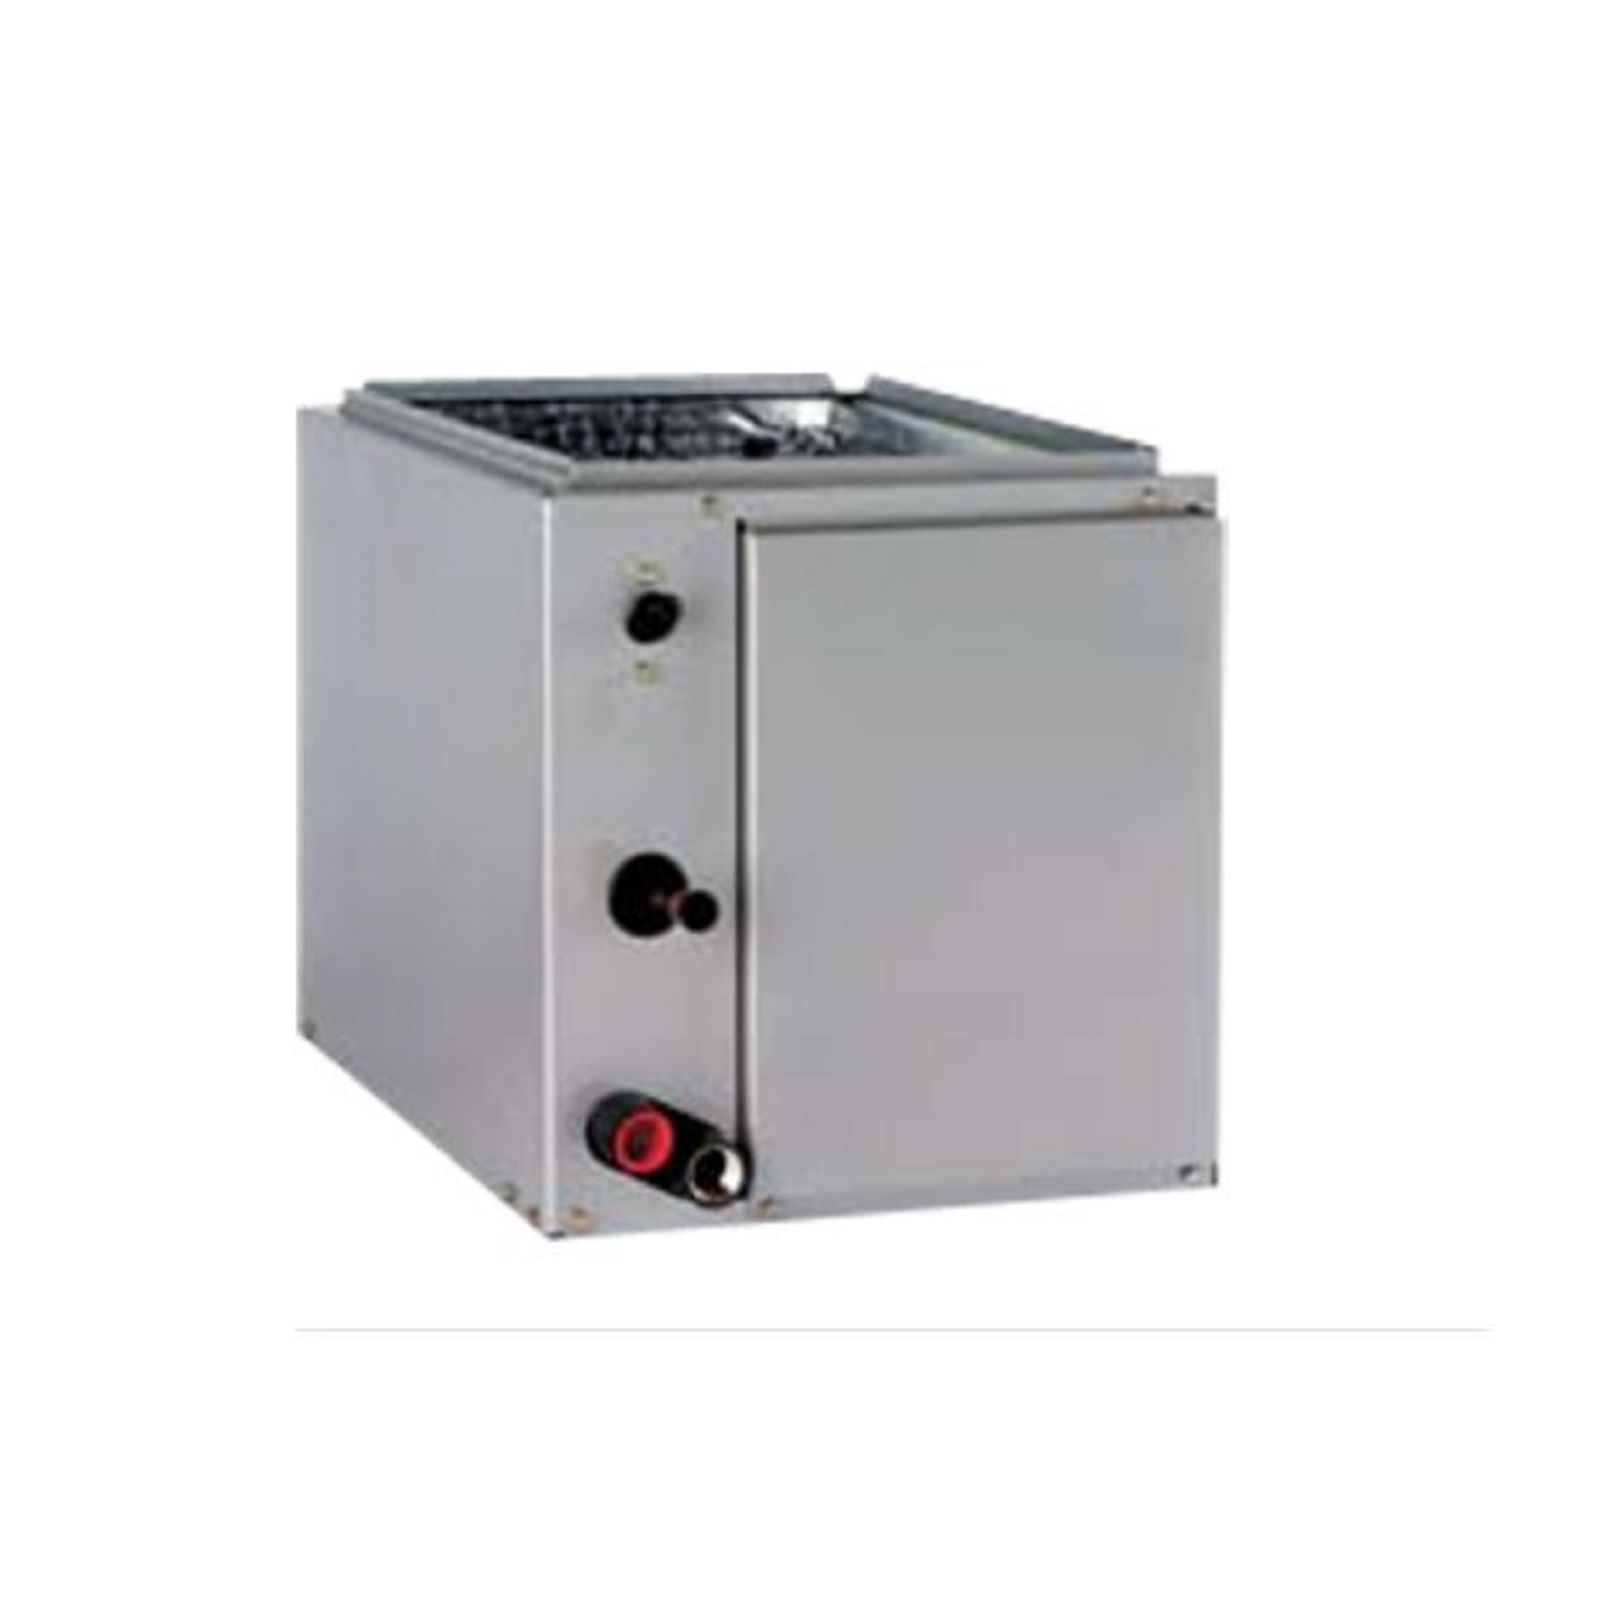 "Tempstar END4X42L21A - 3 1/2 Ton, R410A, Cased Up/Down Flow, N Type Evaporator Coil, With TXV, 21"" Wide"